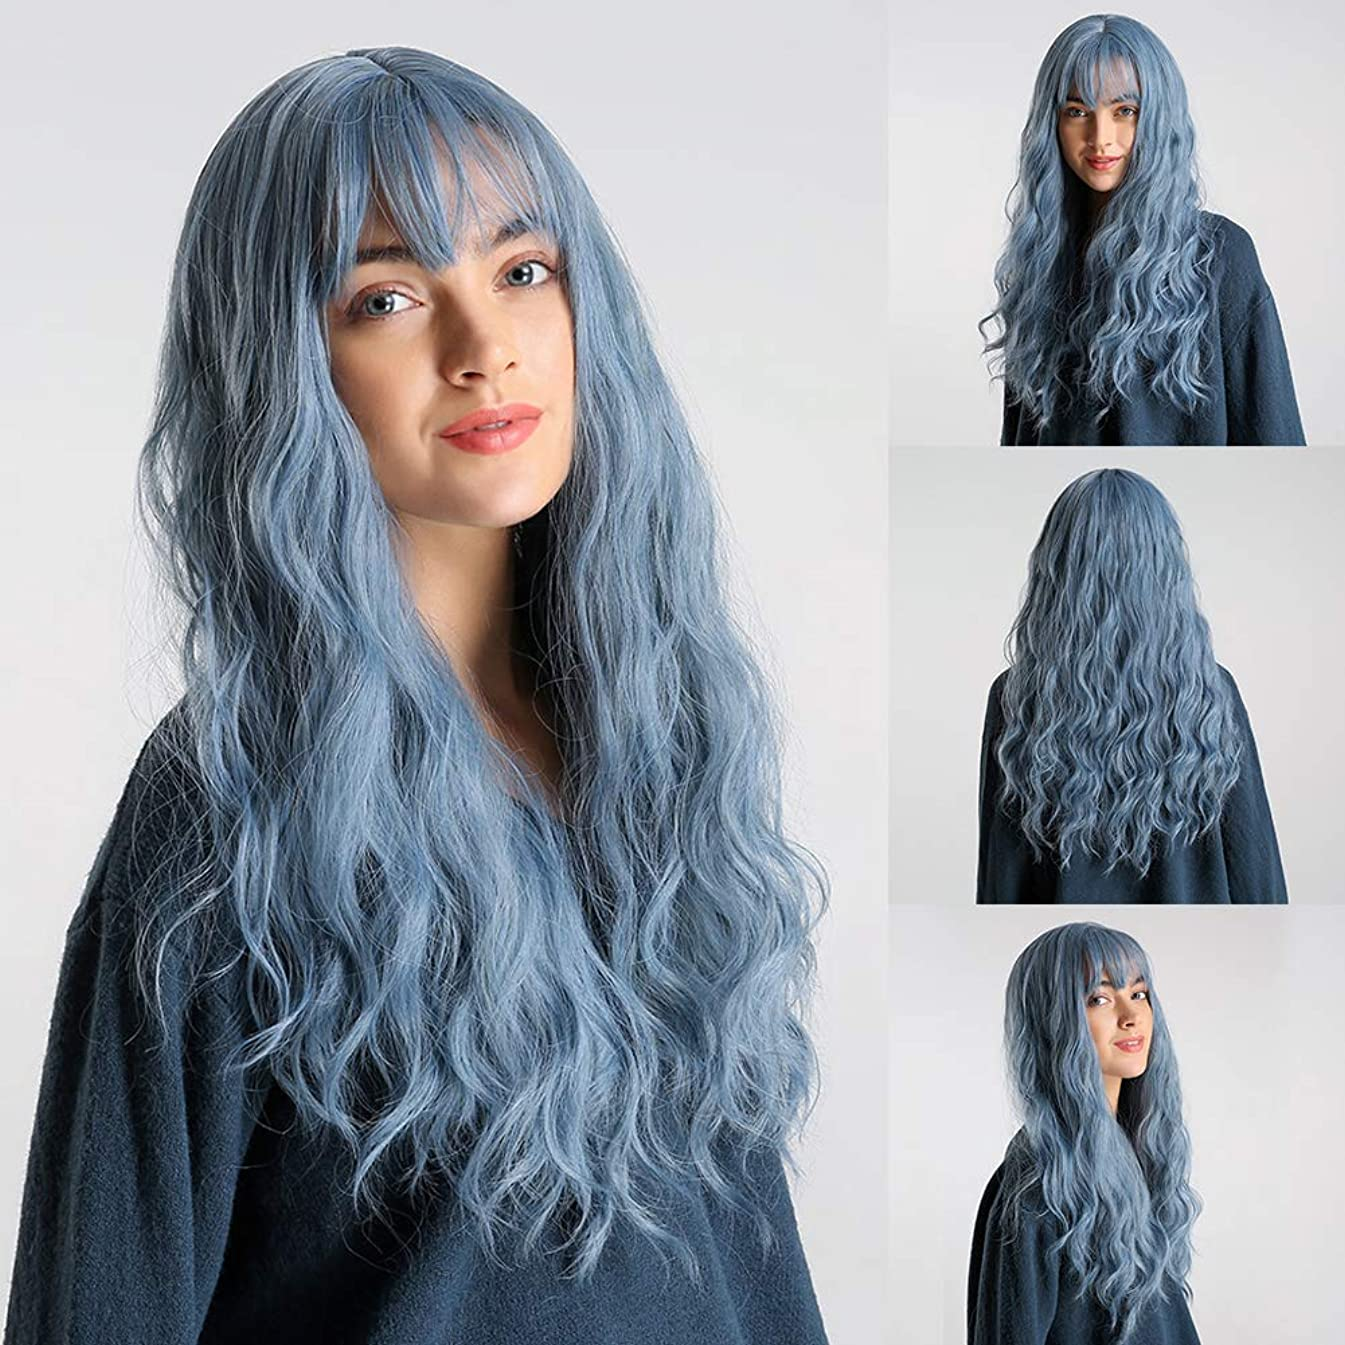 Adonpshy Women Wig,High Temperature Fiber Blue Long Curly Bang Wig Women Cosplay Party Hairpiece,Let You Exude Charm